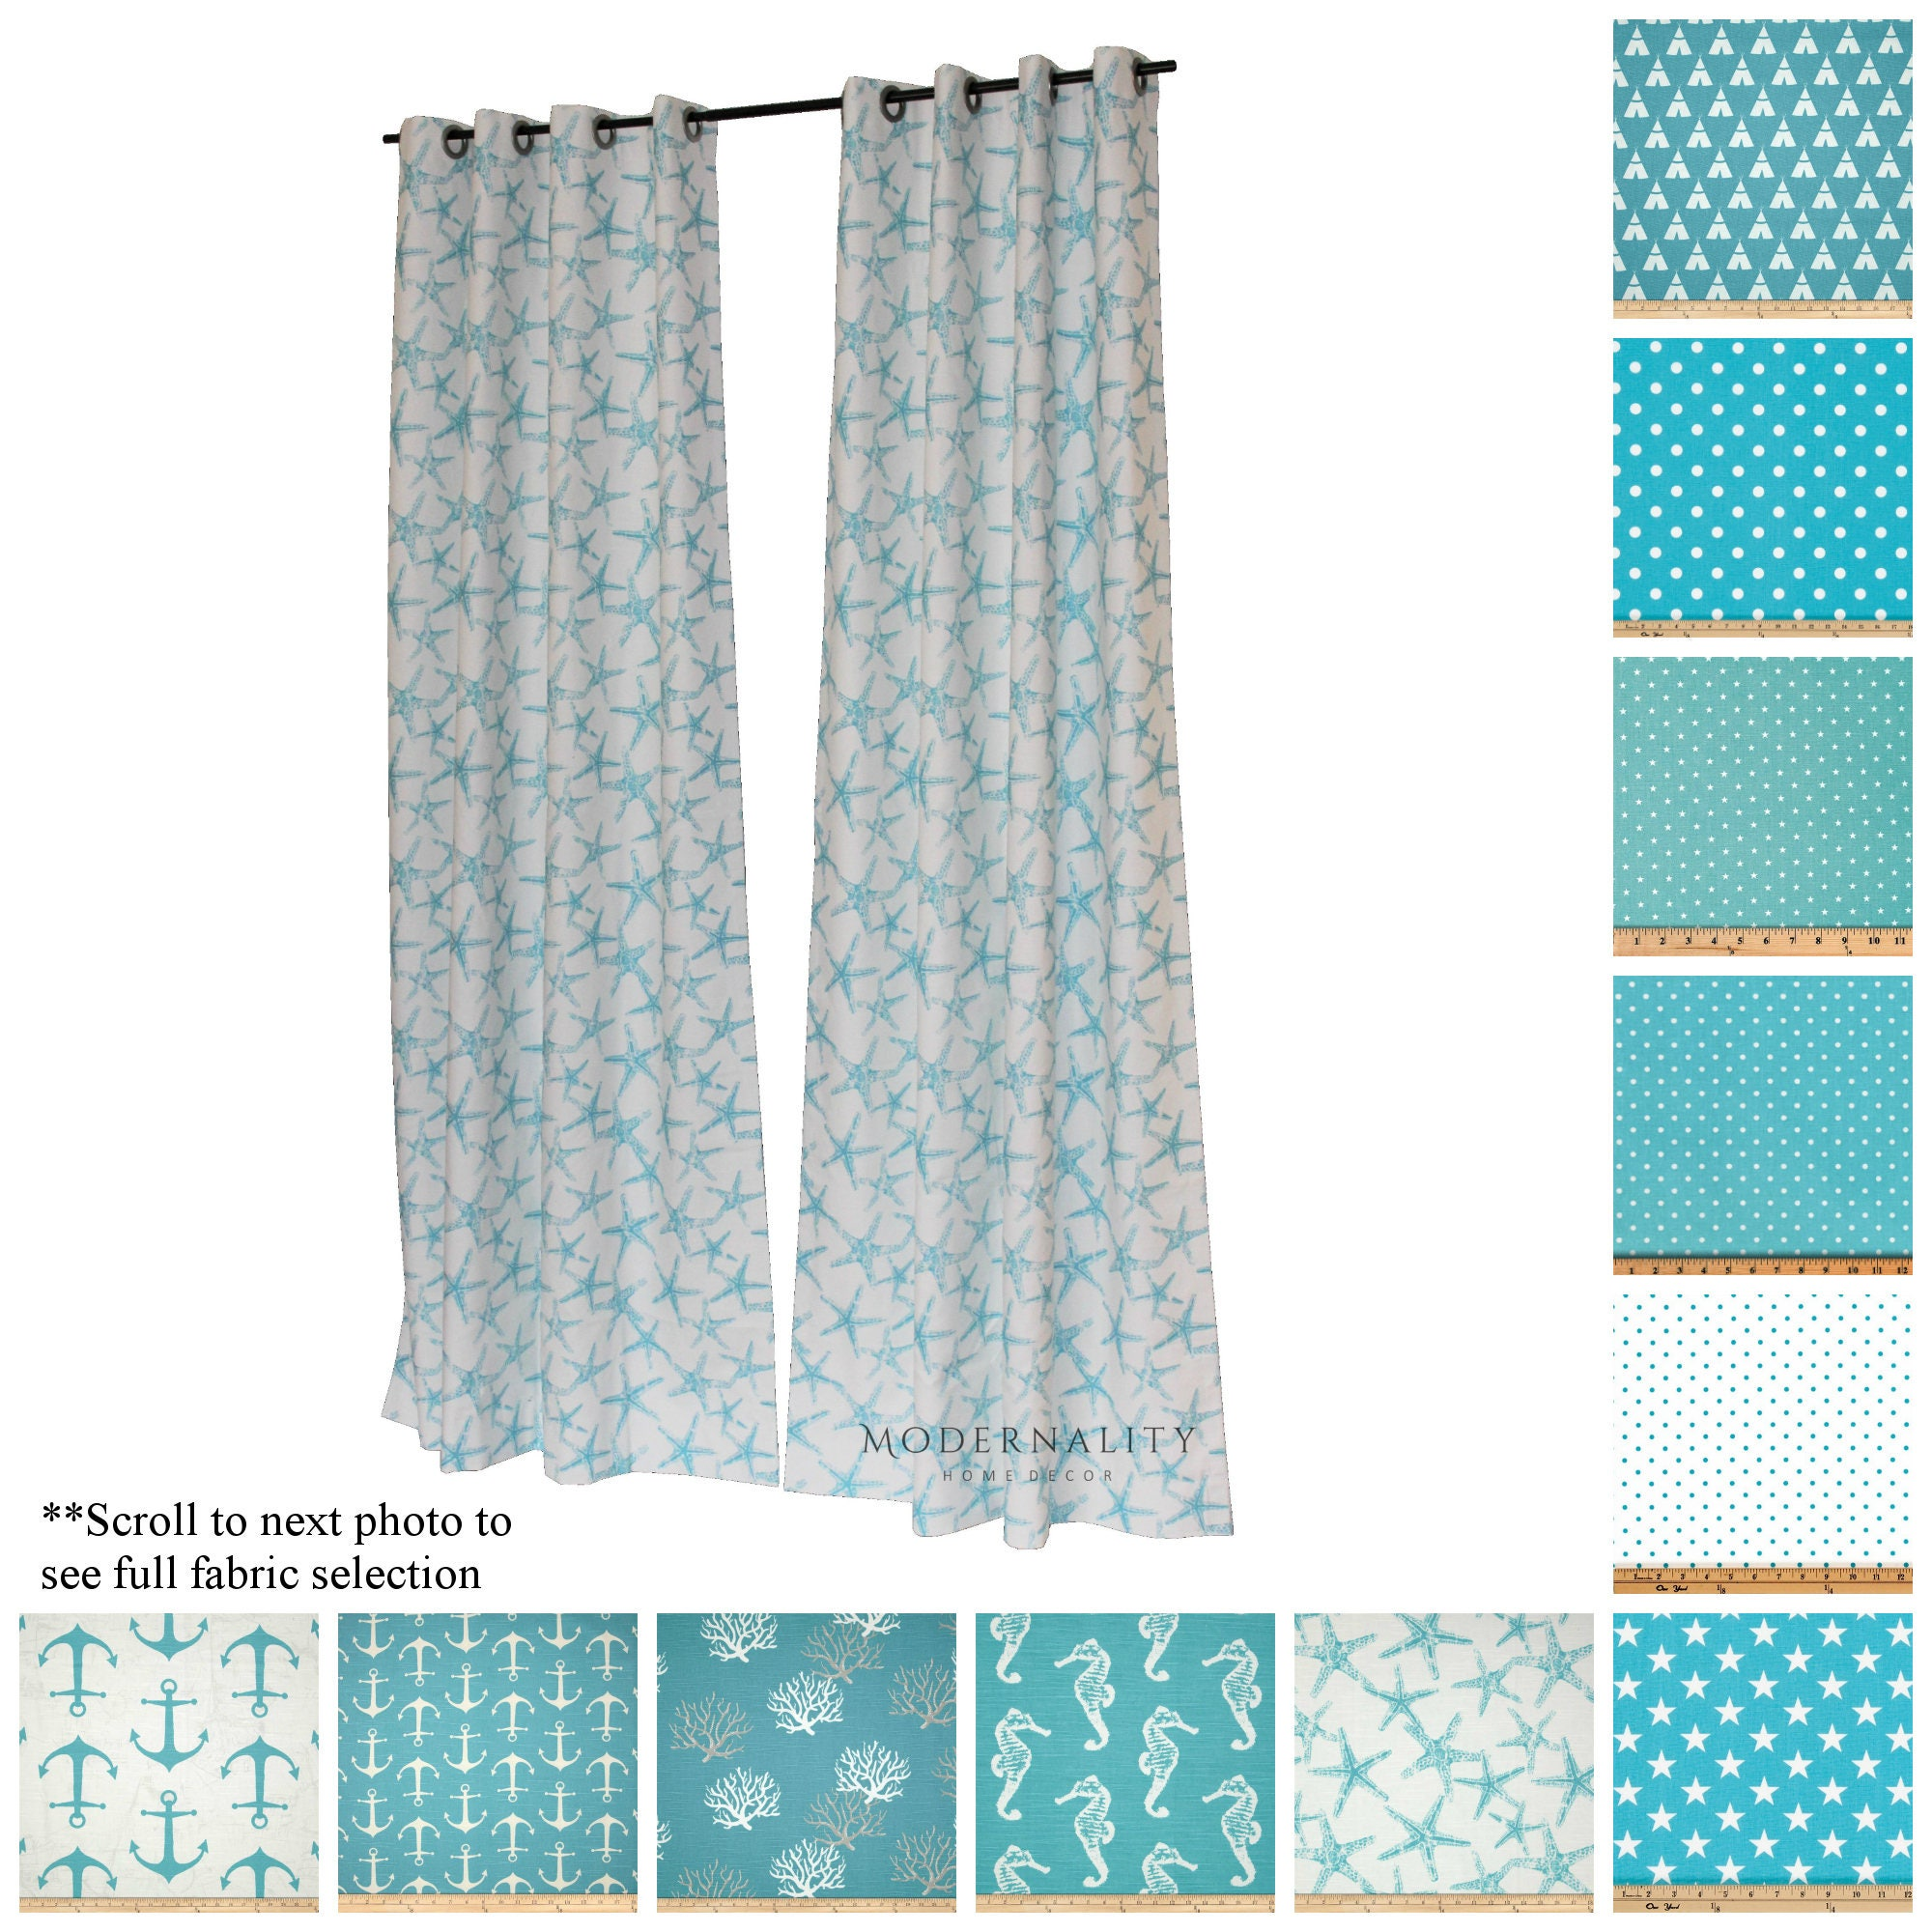 wood add curtain with category your of insulated for advantages privacy beautiful blocking drawers stylish home nautical area to rug grommet style decor curtains and window blackout flooring light blog plus